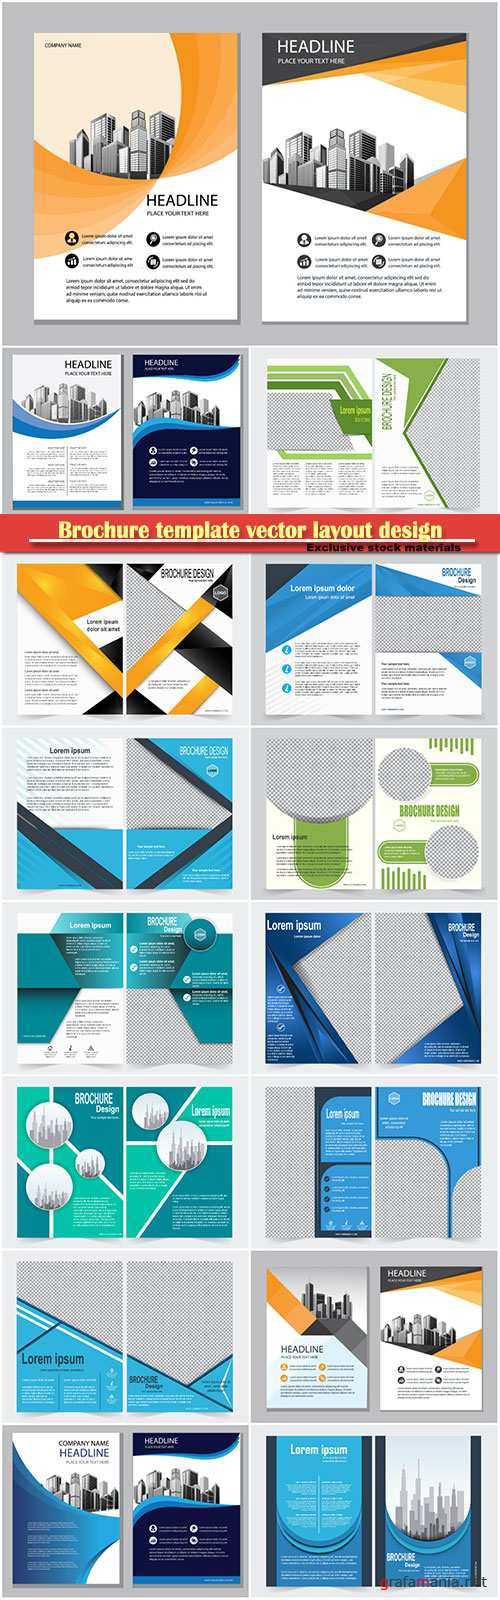 Brochure template vector layout design, corporate business annual report, magazine, flyer mockup # 142